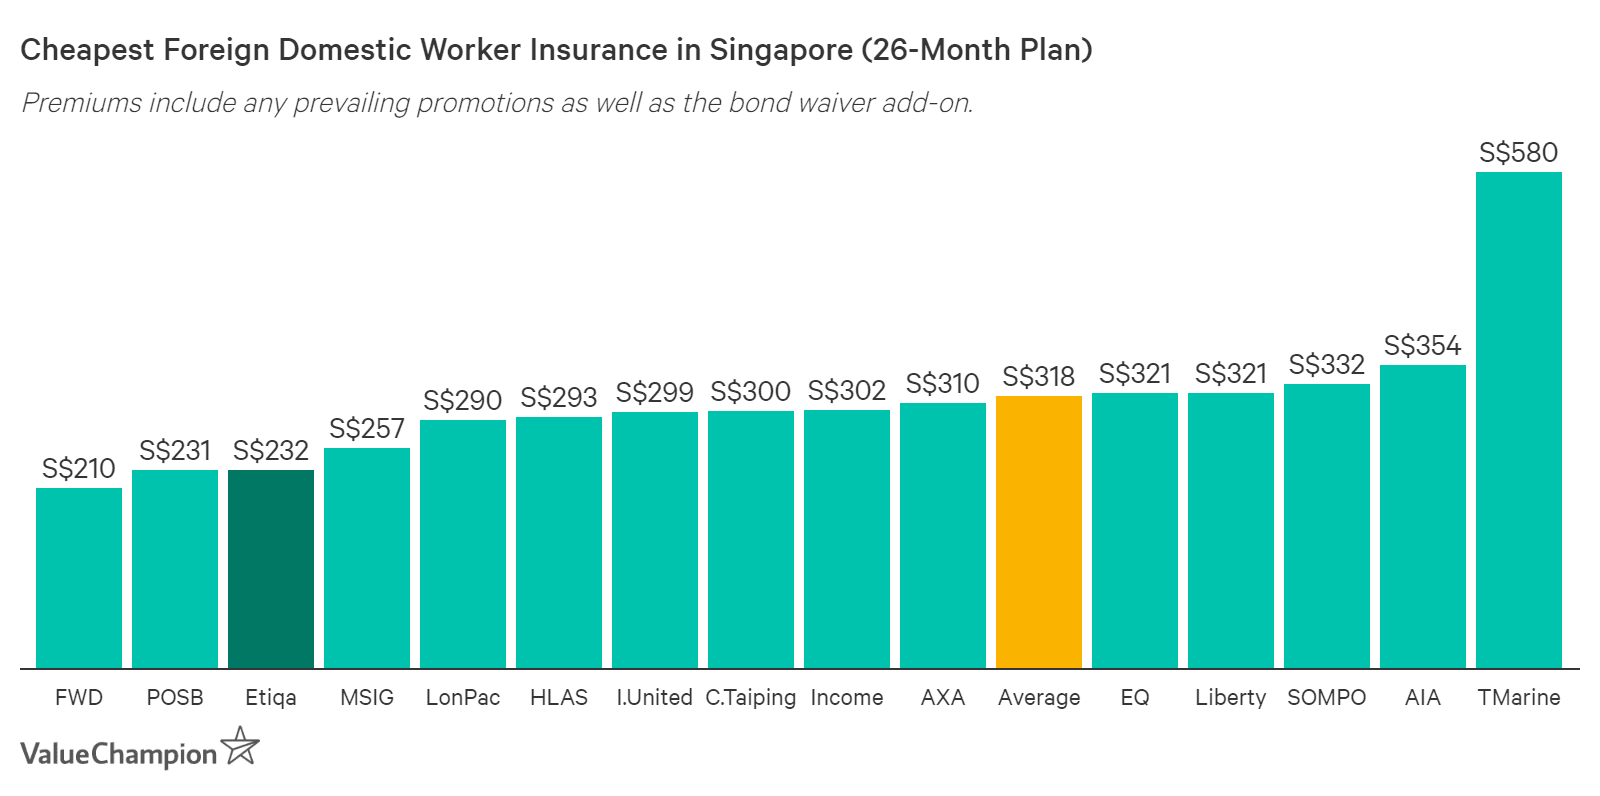 Etiqa Maid Insurance Premiums Compared to Other Insurers